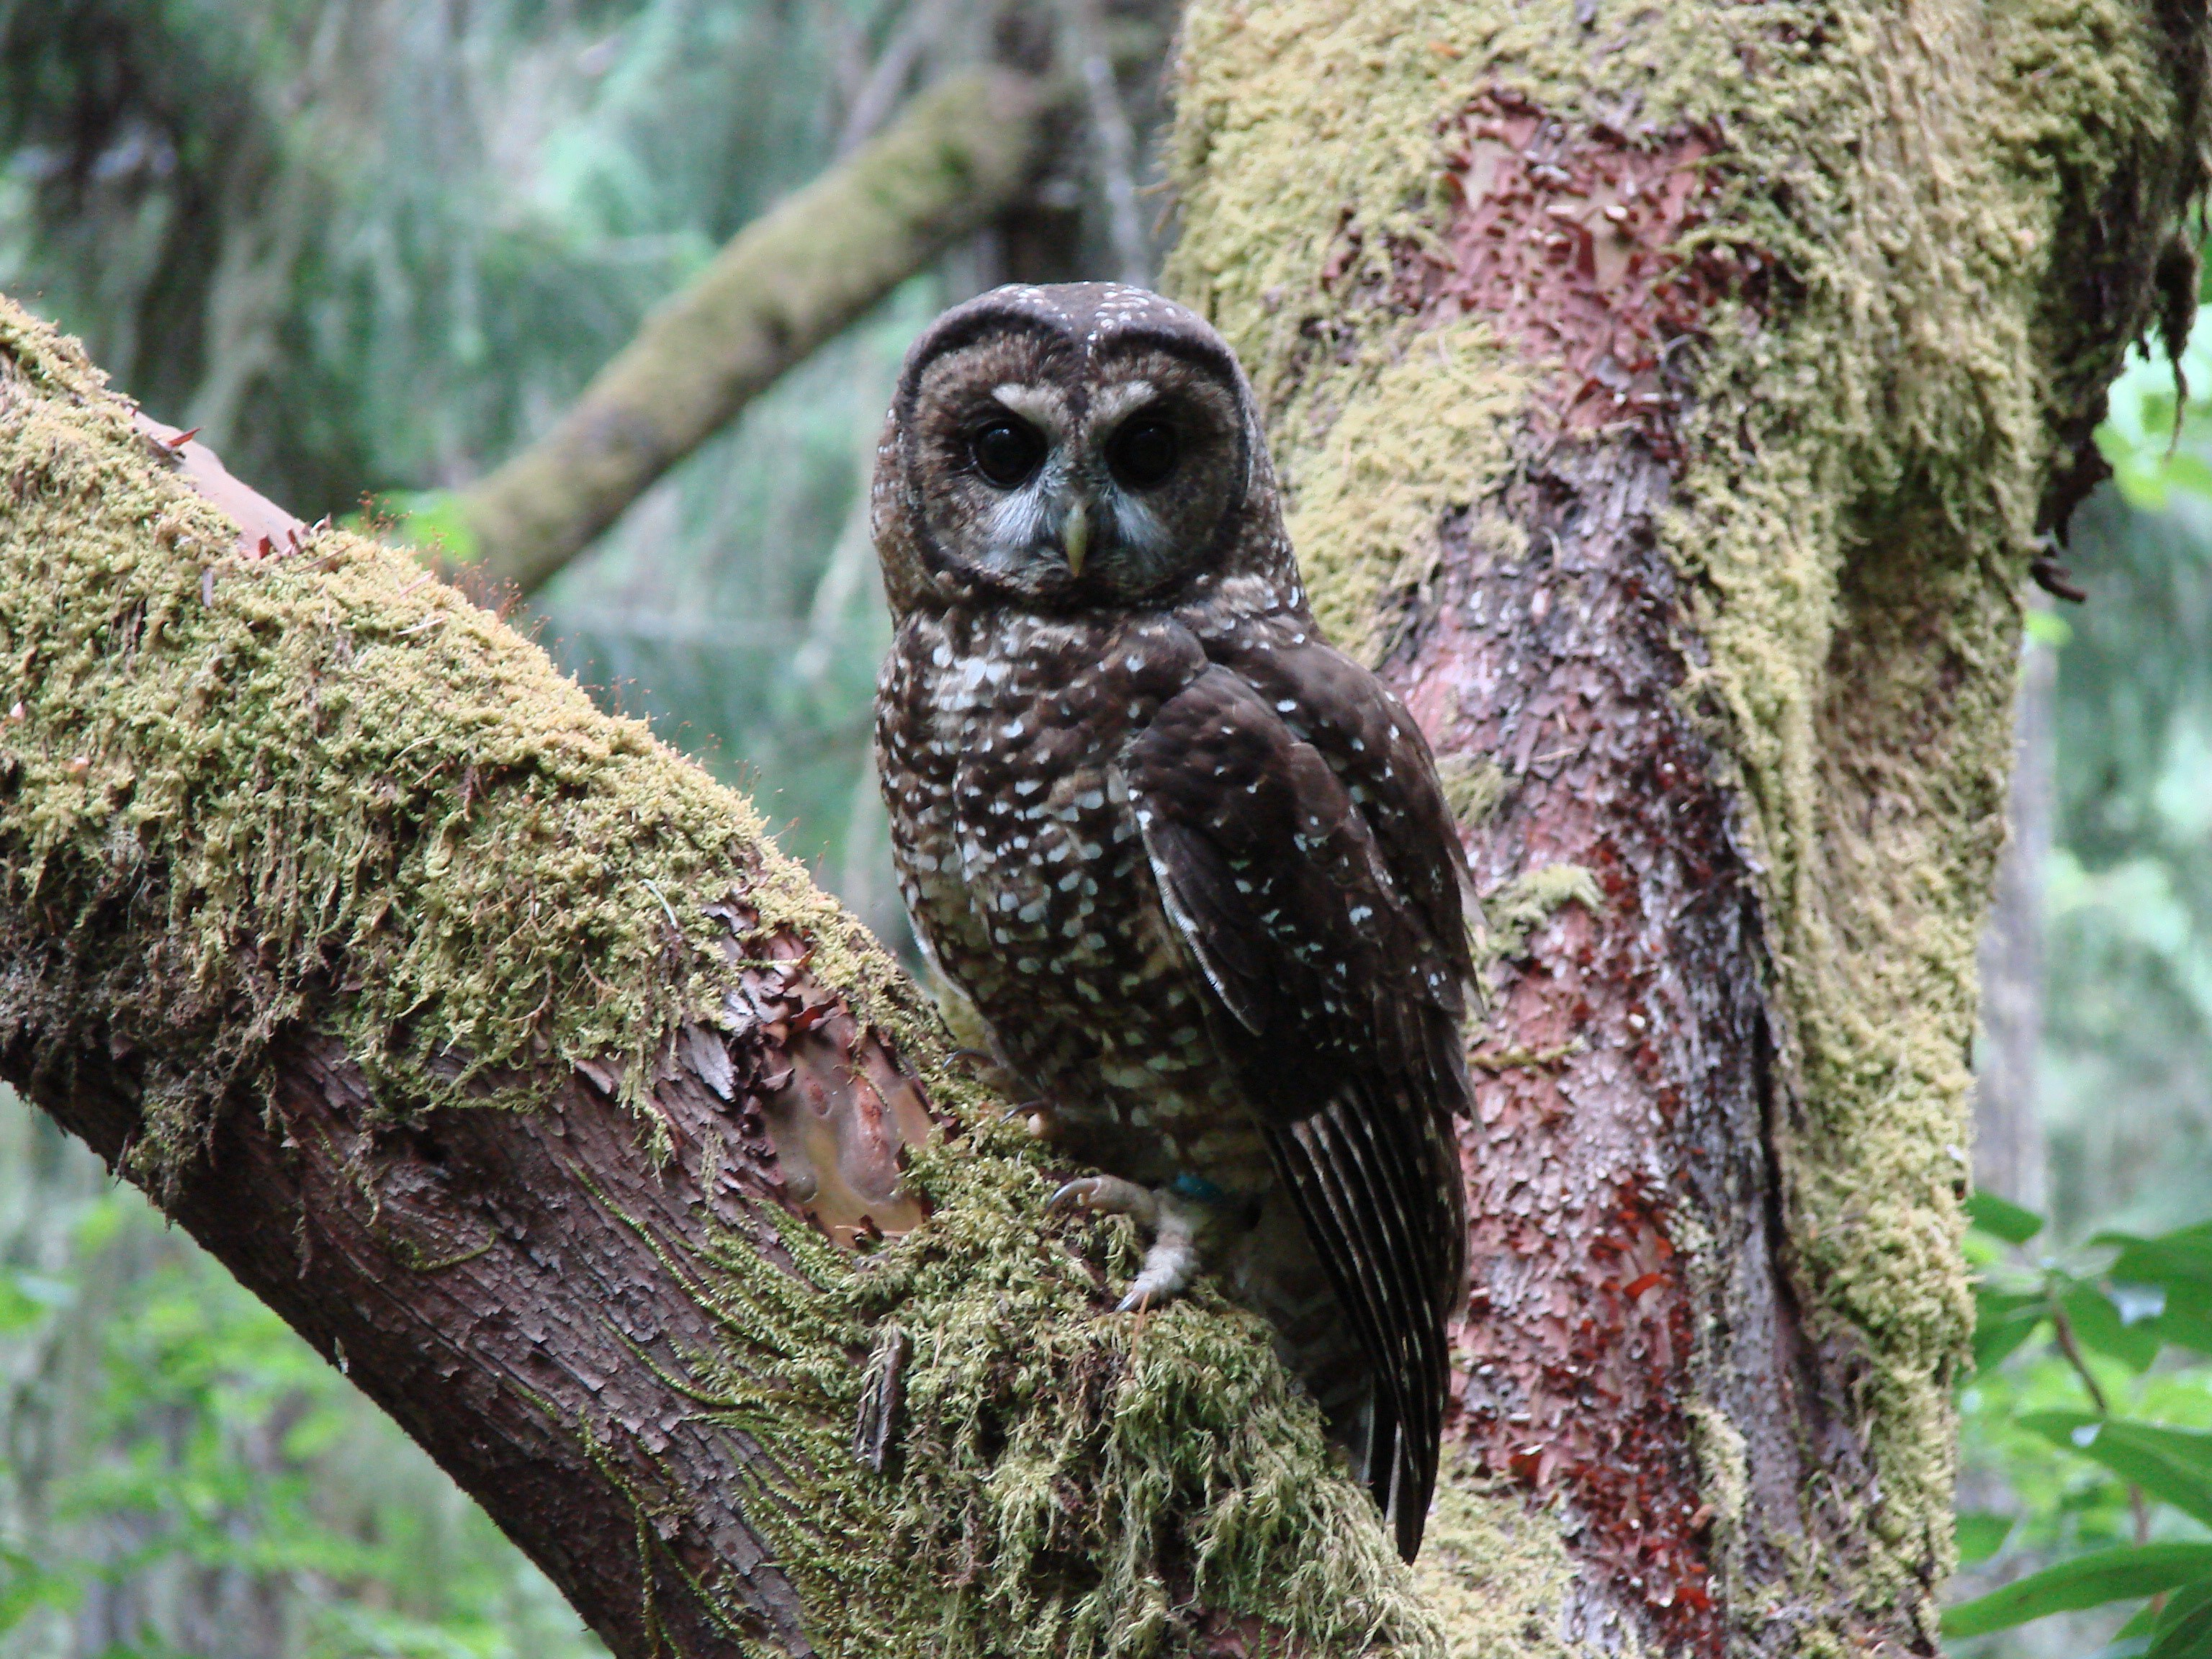 A northern spotted owl peers down from an old-growth forest in the Pacific Northwest.